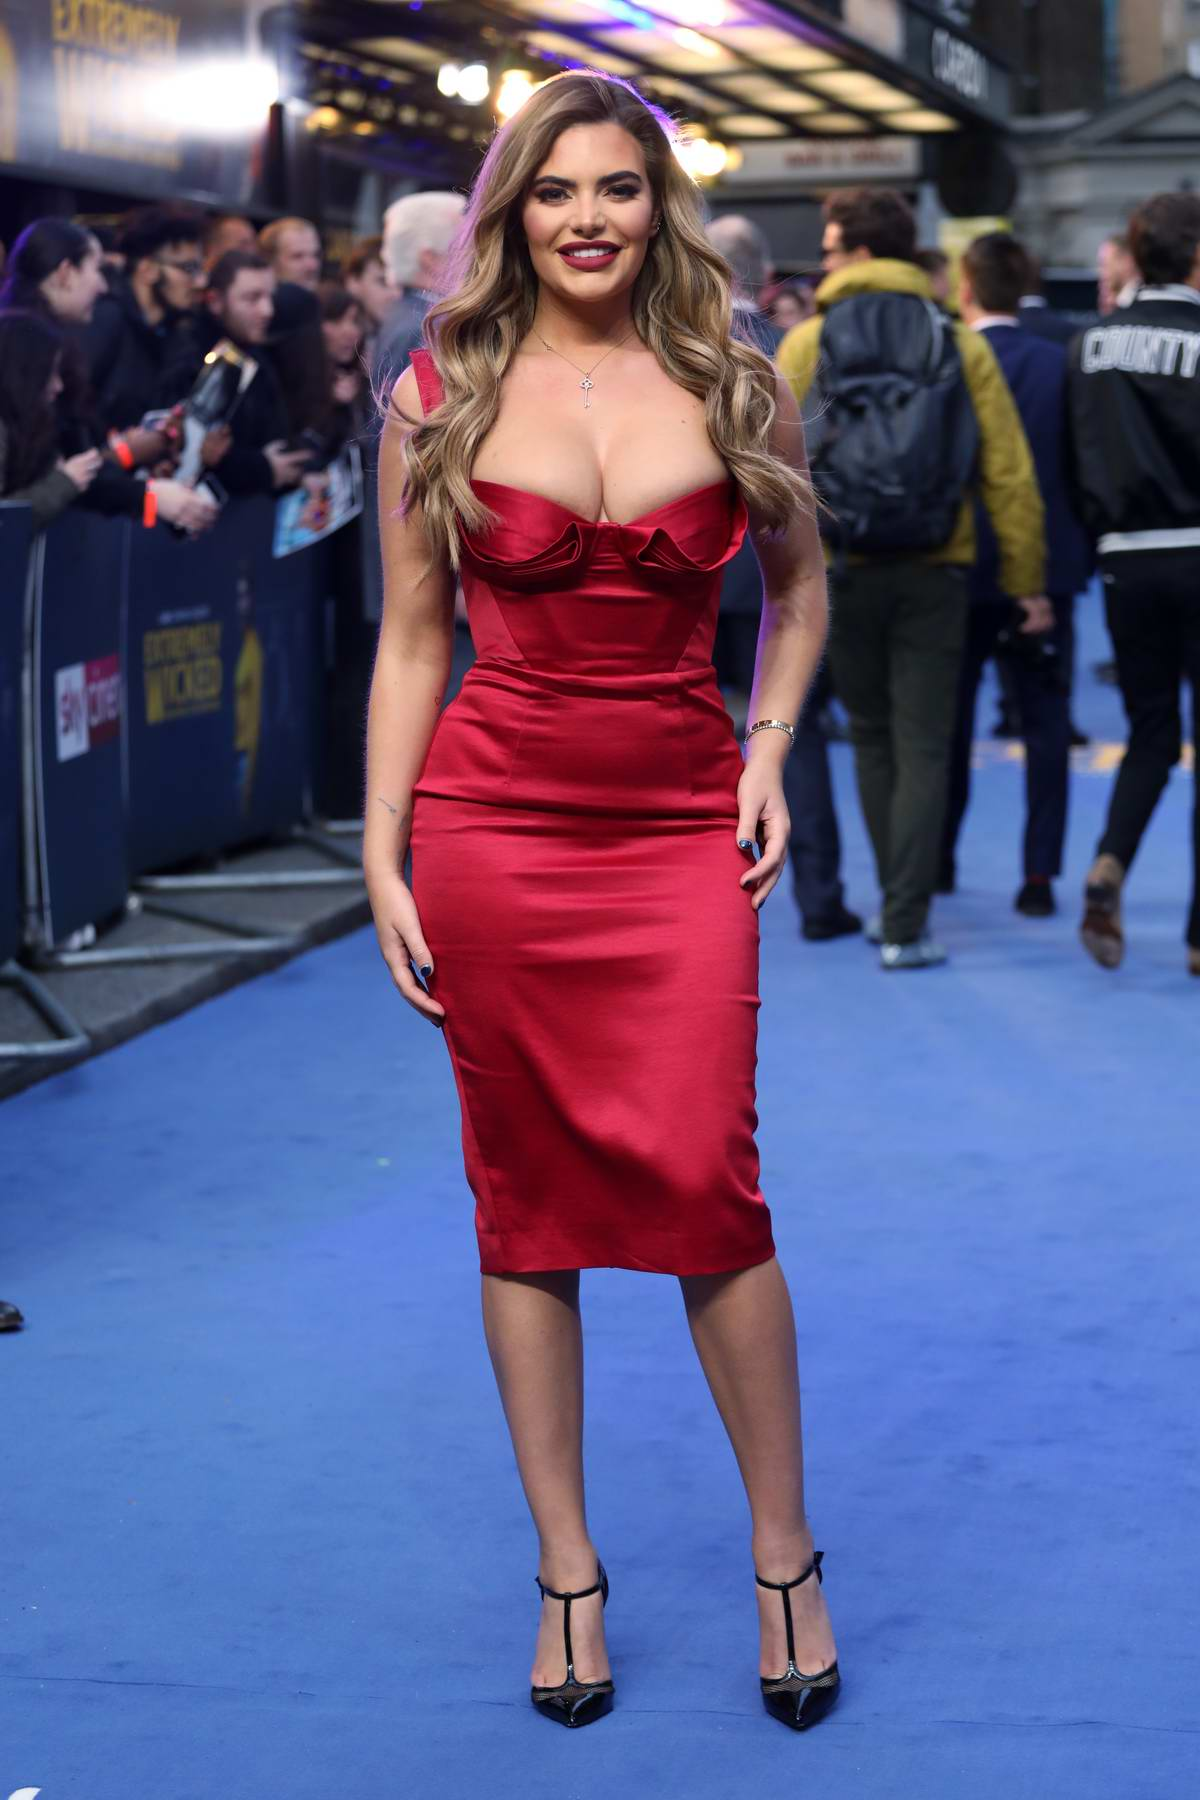 Megan Barton-Hanson attends the European Premiere of 'Extremely Wicked, Shockingly Evil and Vile' at Curzon Mayfair in London, UK